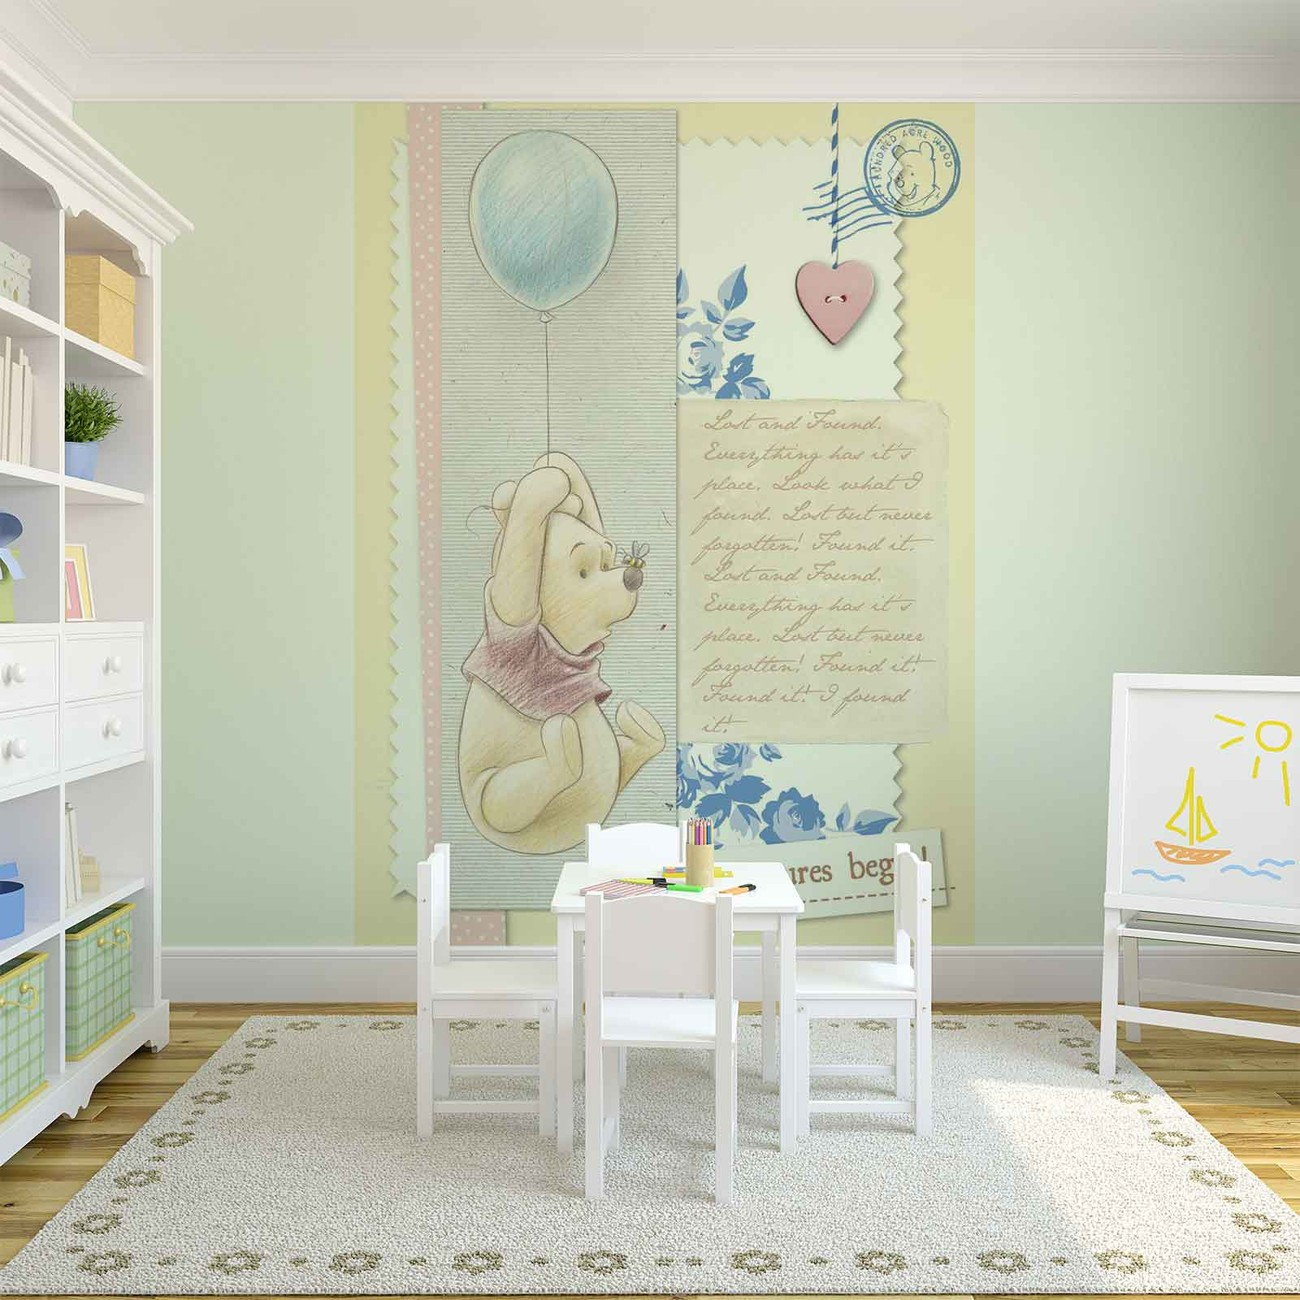 Disney winnie pooh wall paper mural buy at europosters for Disney wall mural uk